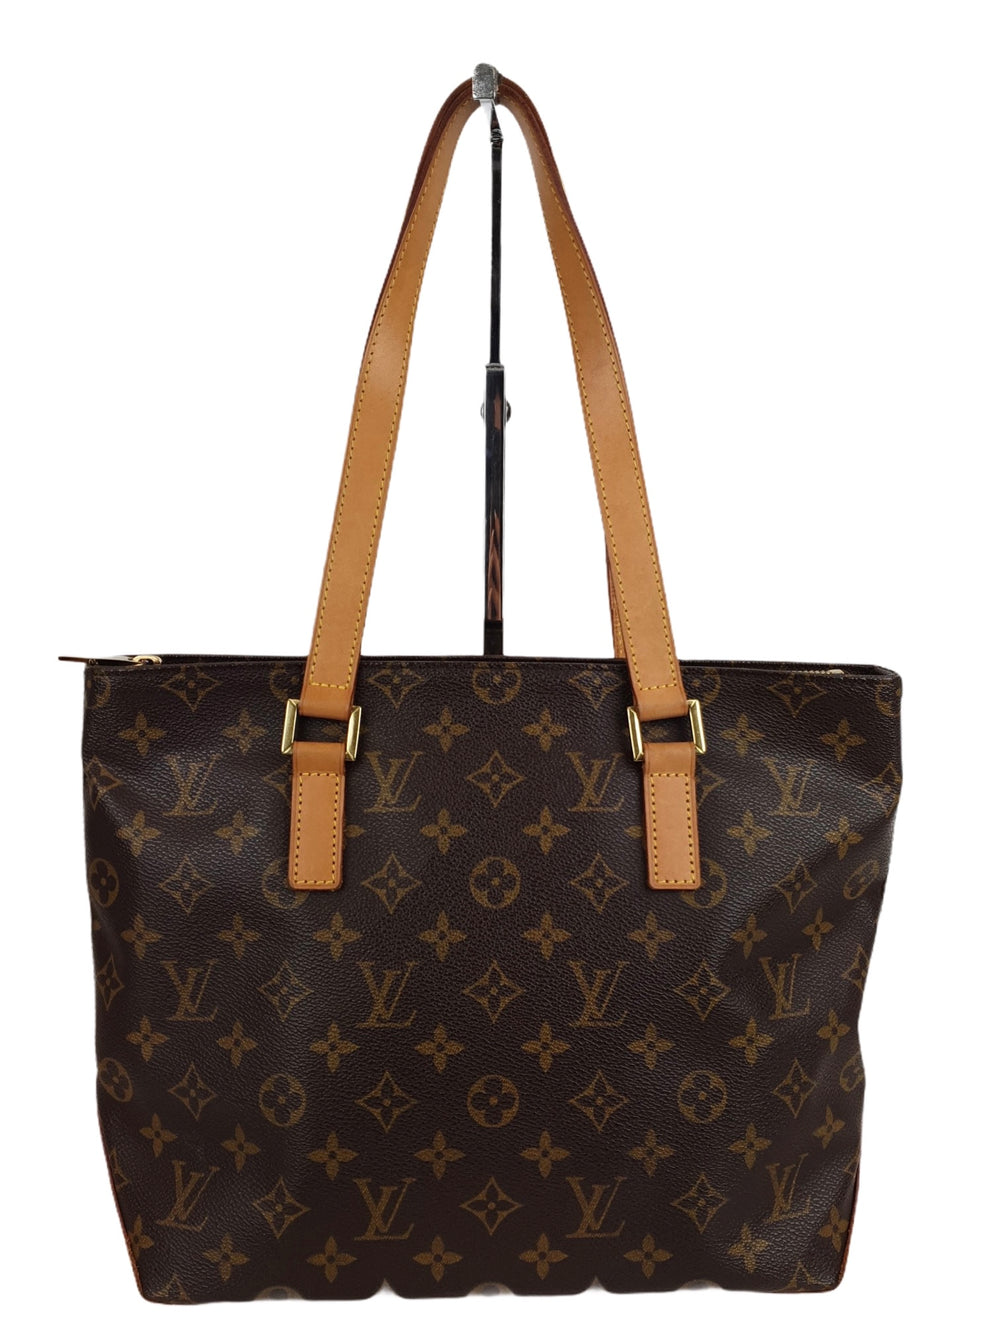 Louis Vuitton Monogram Cabas Tote - As Seen on Instagram